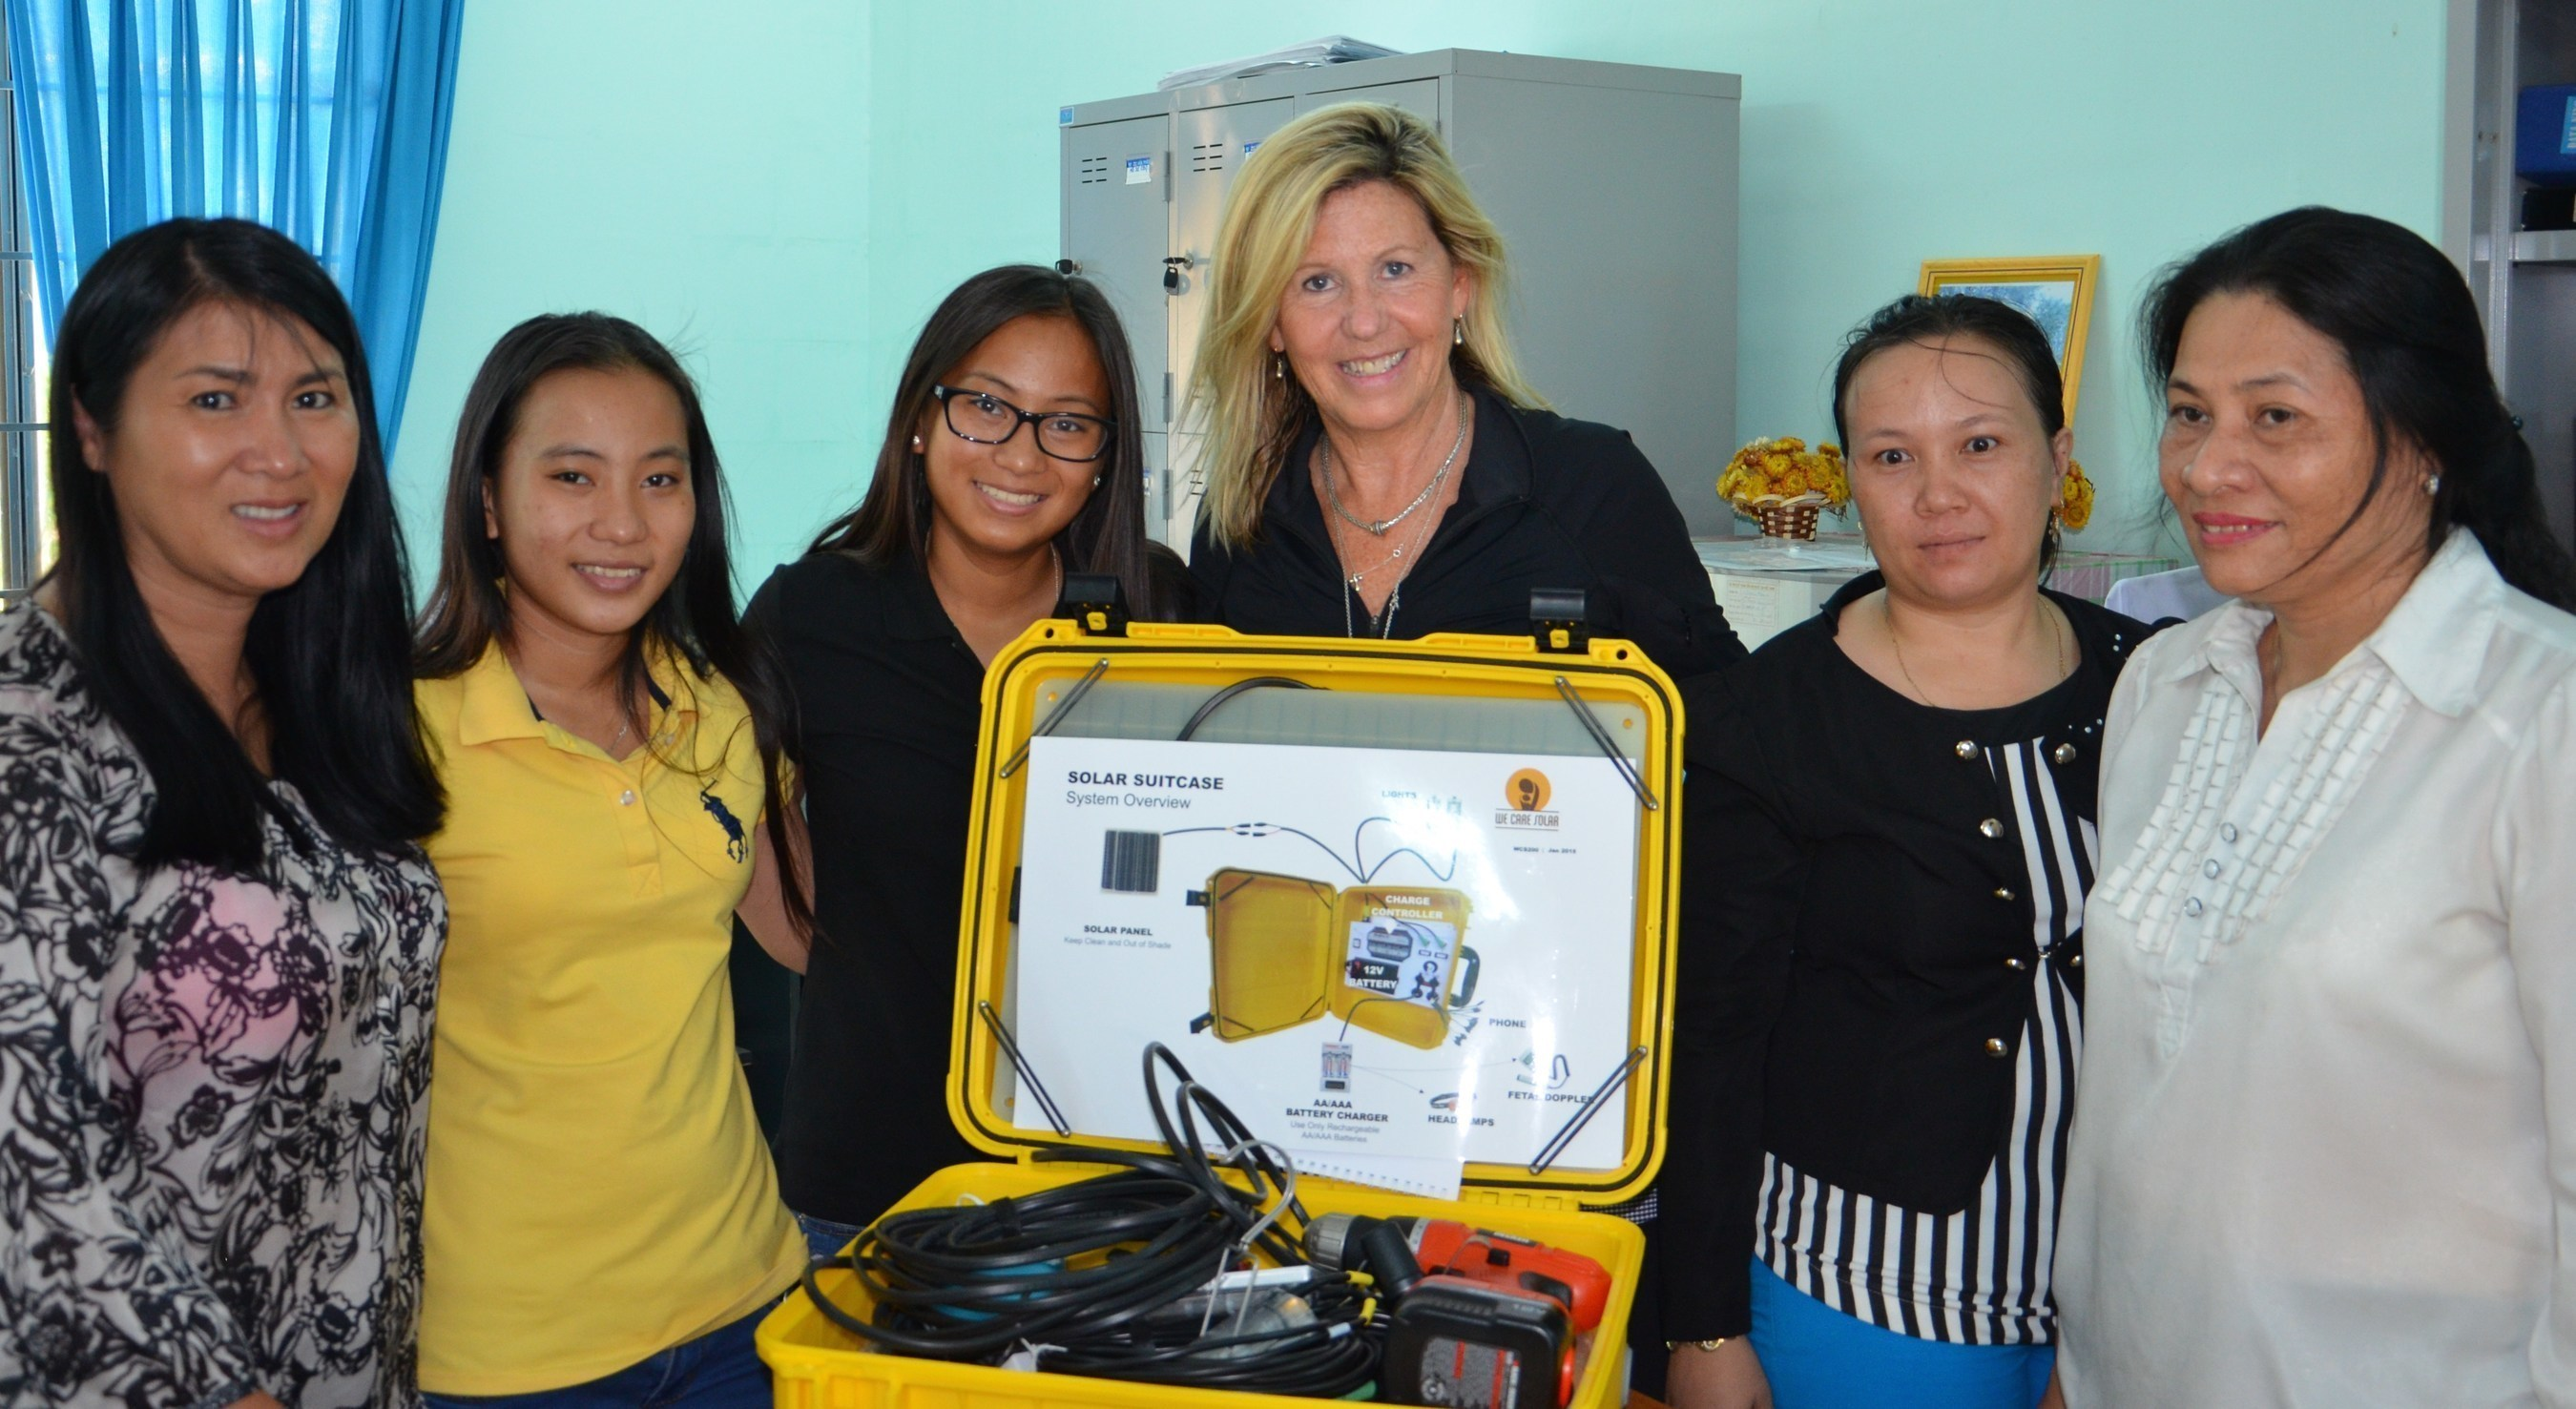 Keely Solimene of Bella | Ha, alongside twins, Isabella and Ha deliver the first Solar Suitcase to a remote clinic in the Khanh Hoa province of Vietnam.